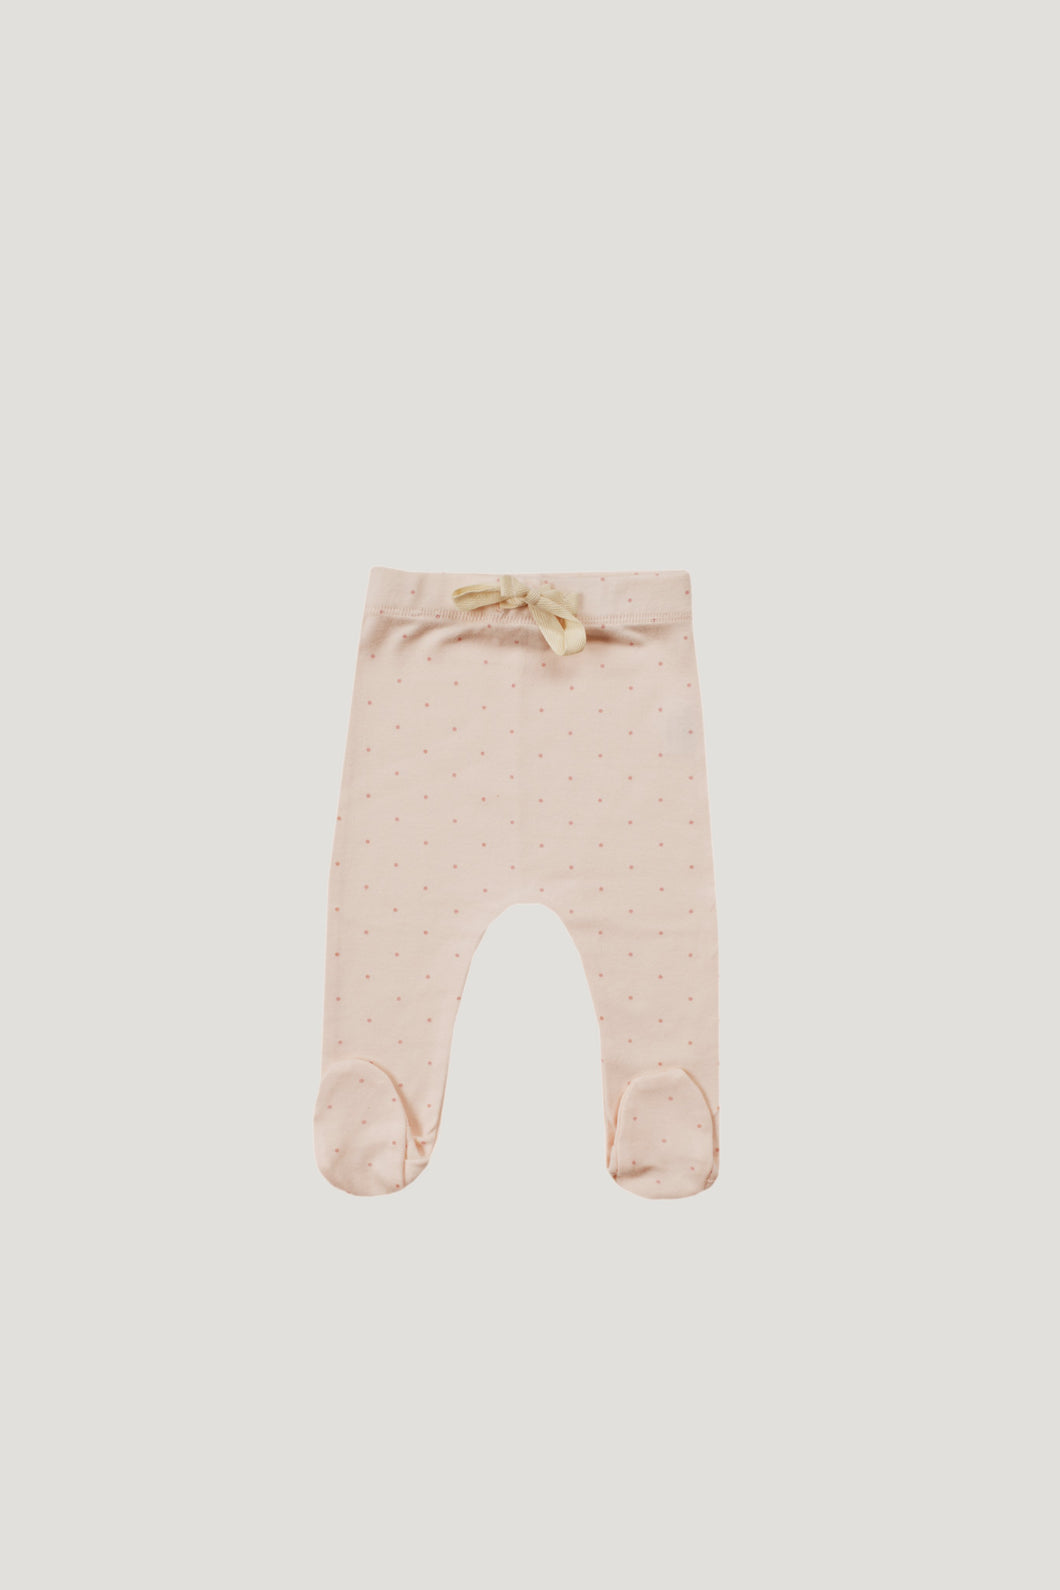 Jamie Kay Organic Cotton Footed Pants- Posy Dots